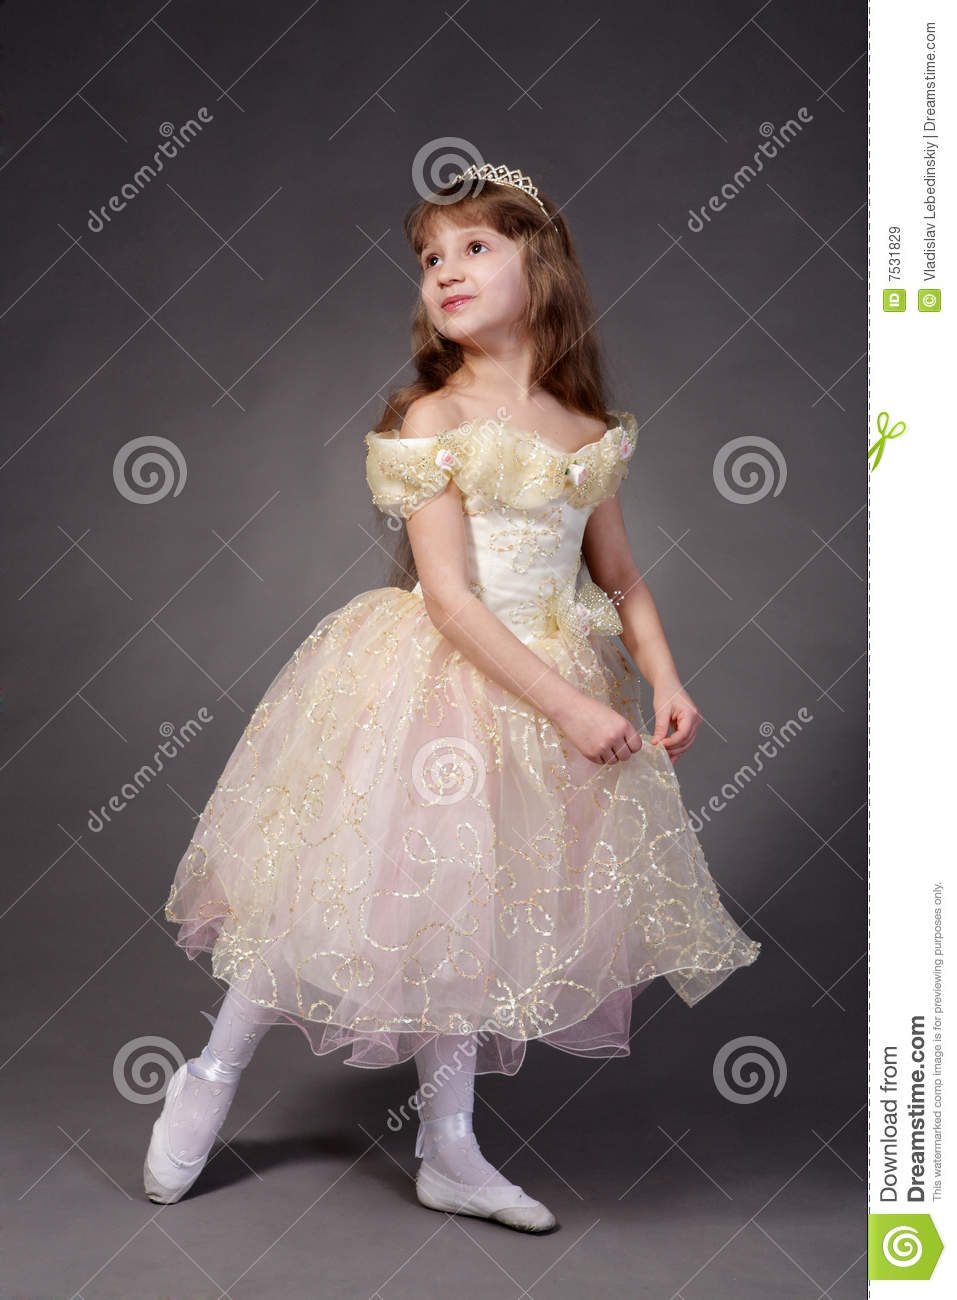 Sister Dresses Boy As Girl : Clothes Review